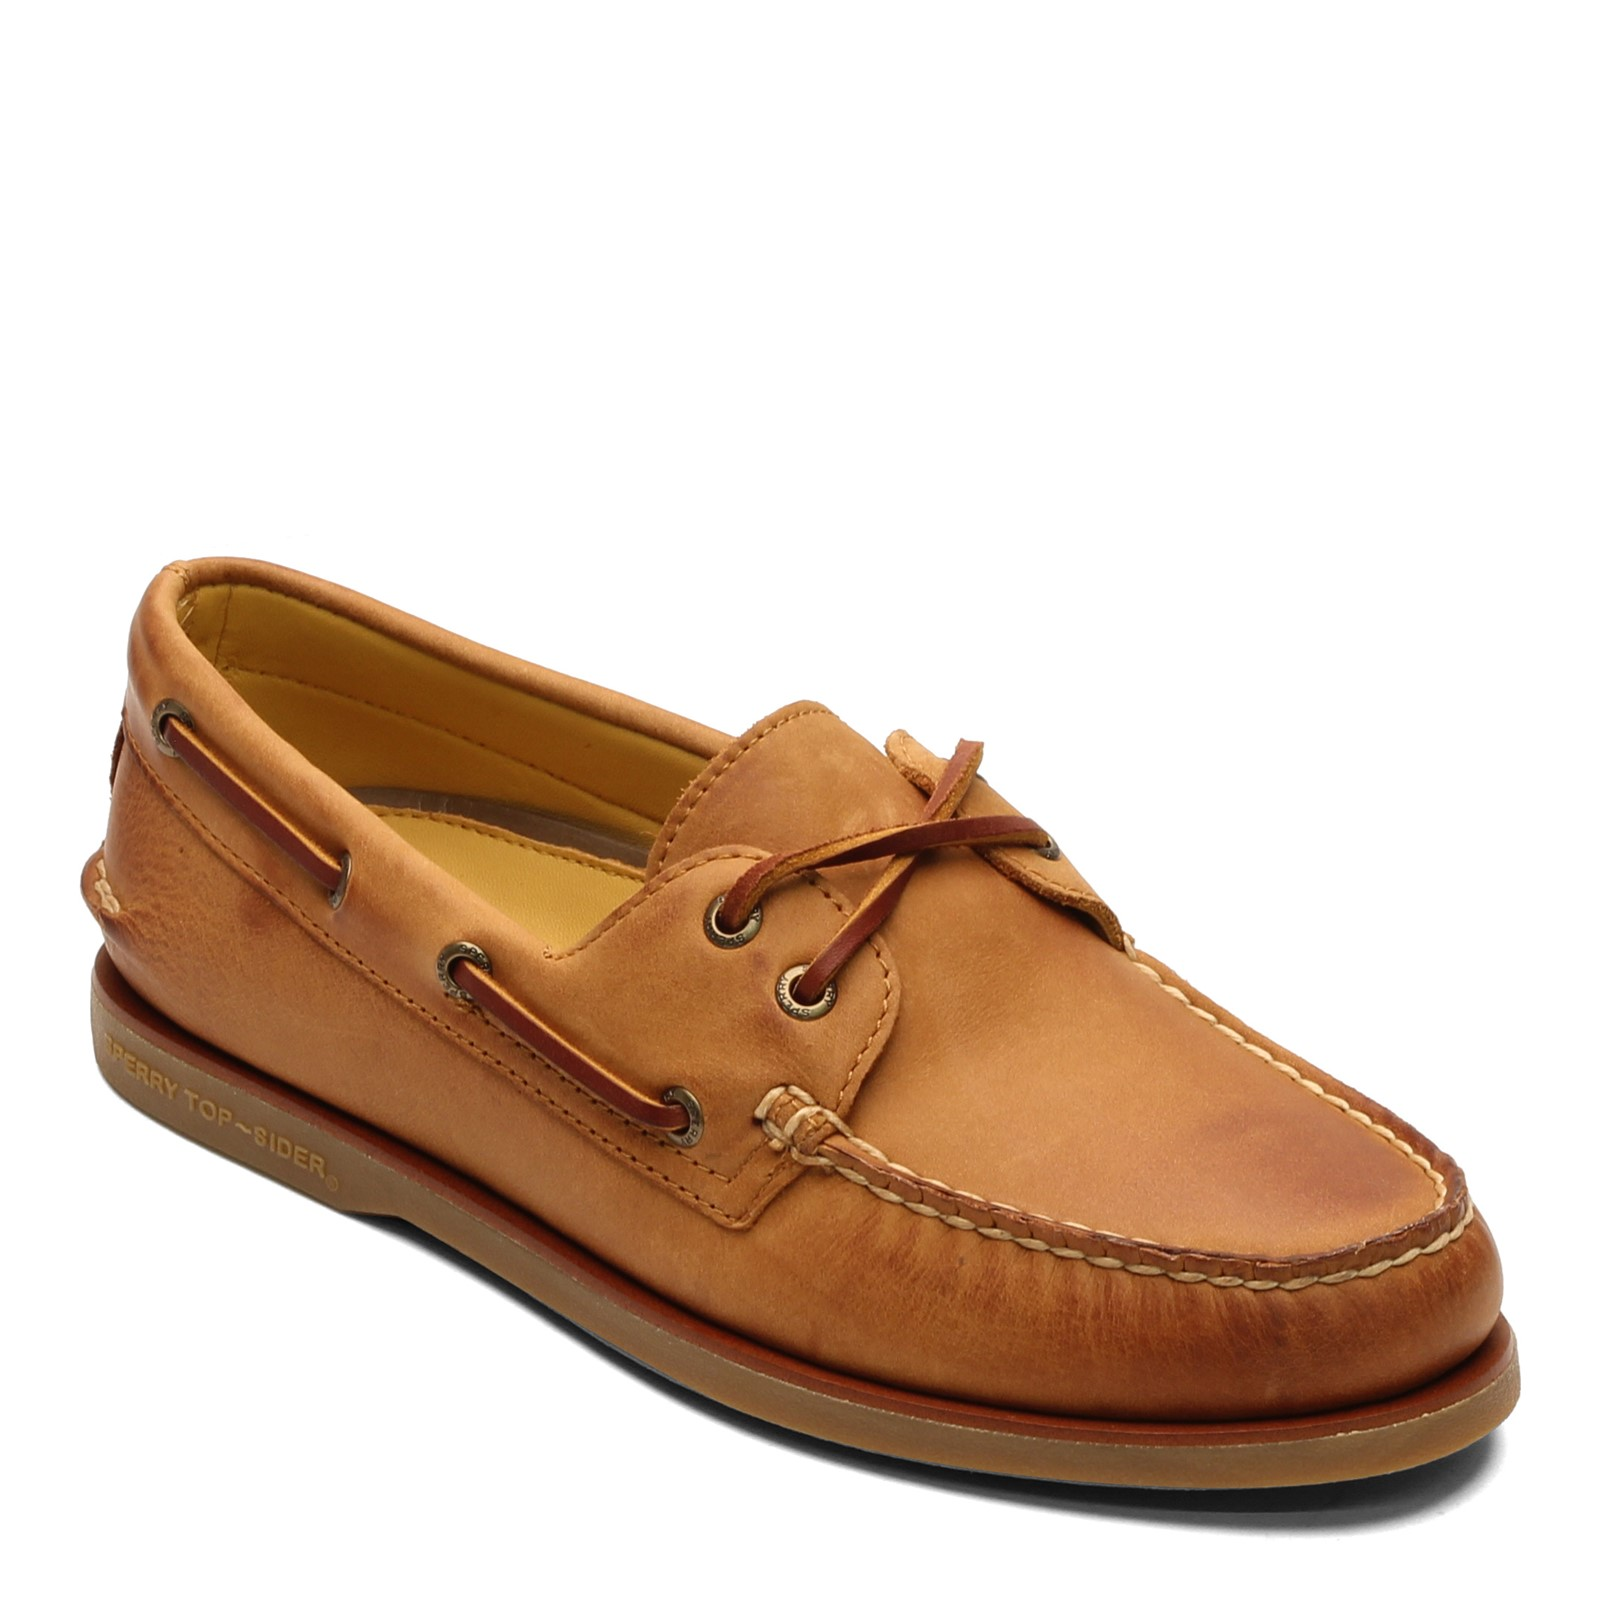 Sperry Top-Sider Gold Cup A/O Navy |Sperry Gold